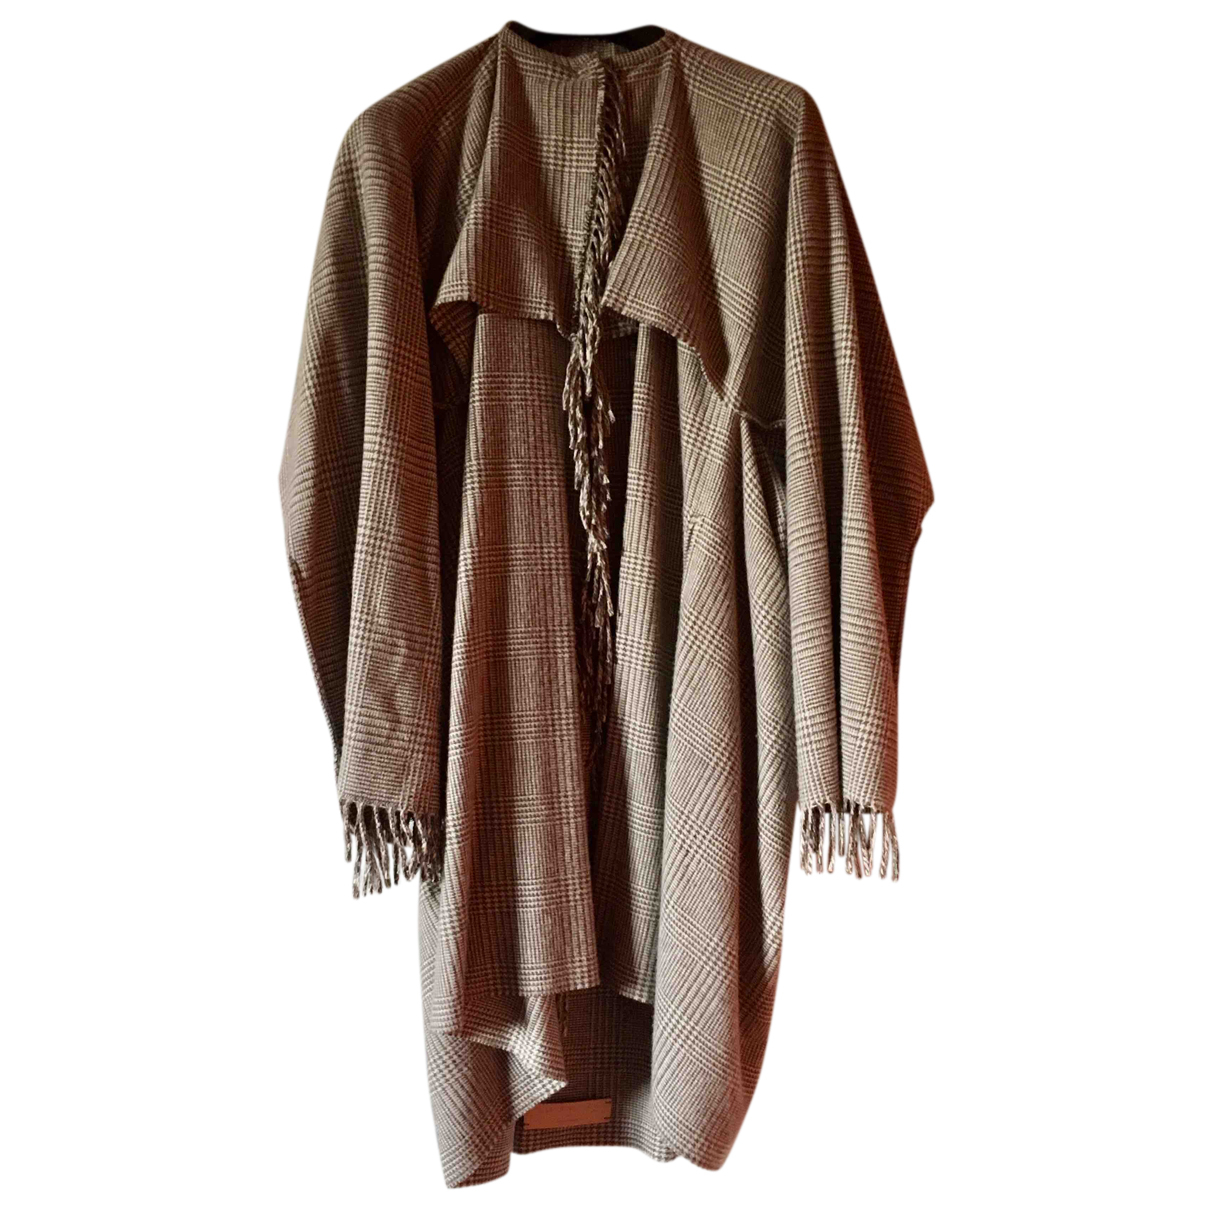 Non Signé / Unsigned Oversize Beige Wool coat for Women One Size International